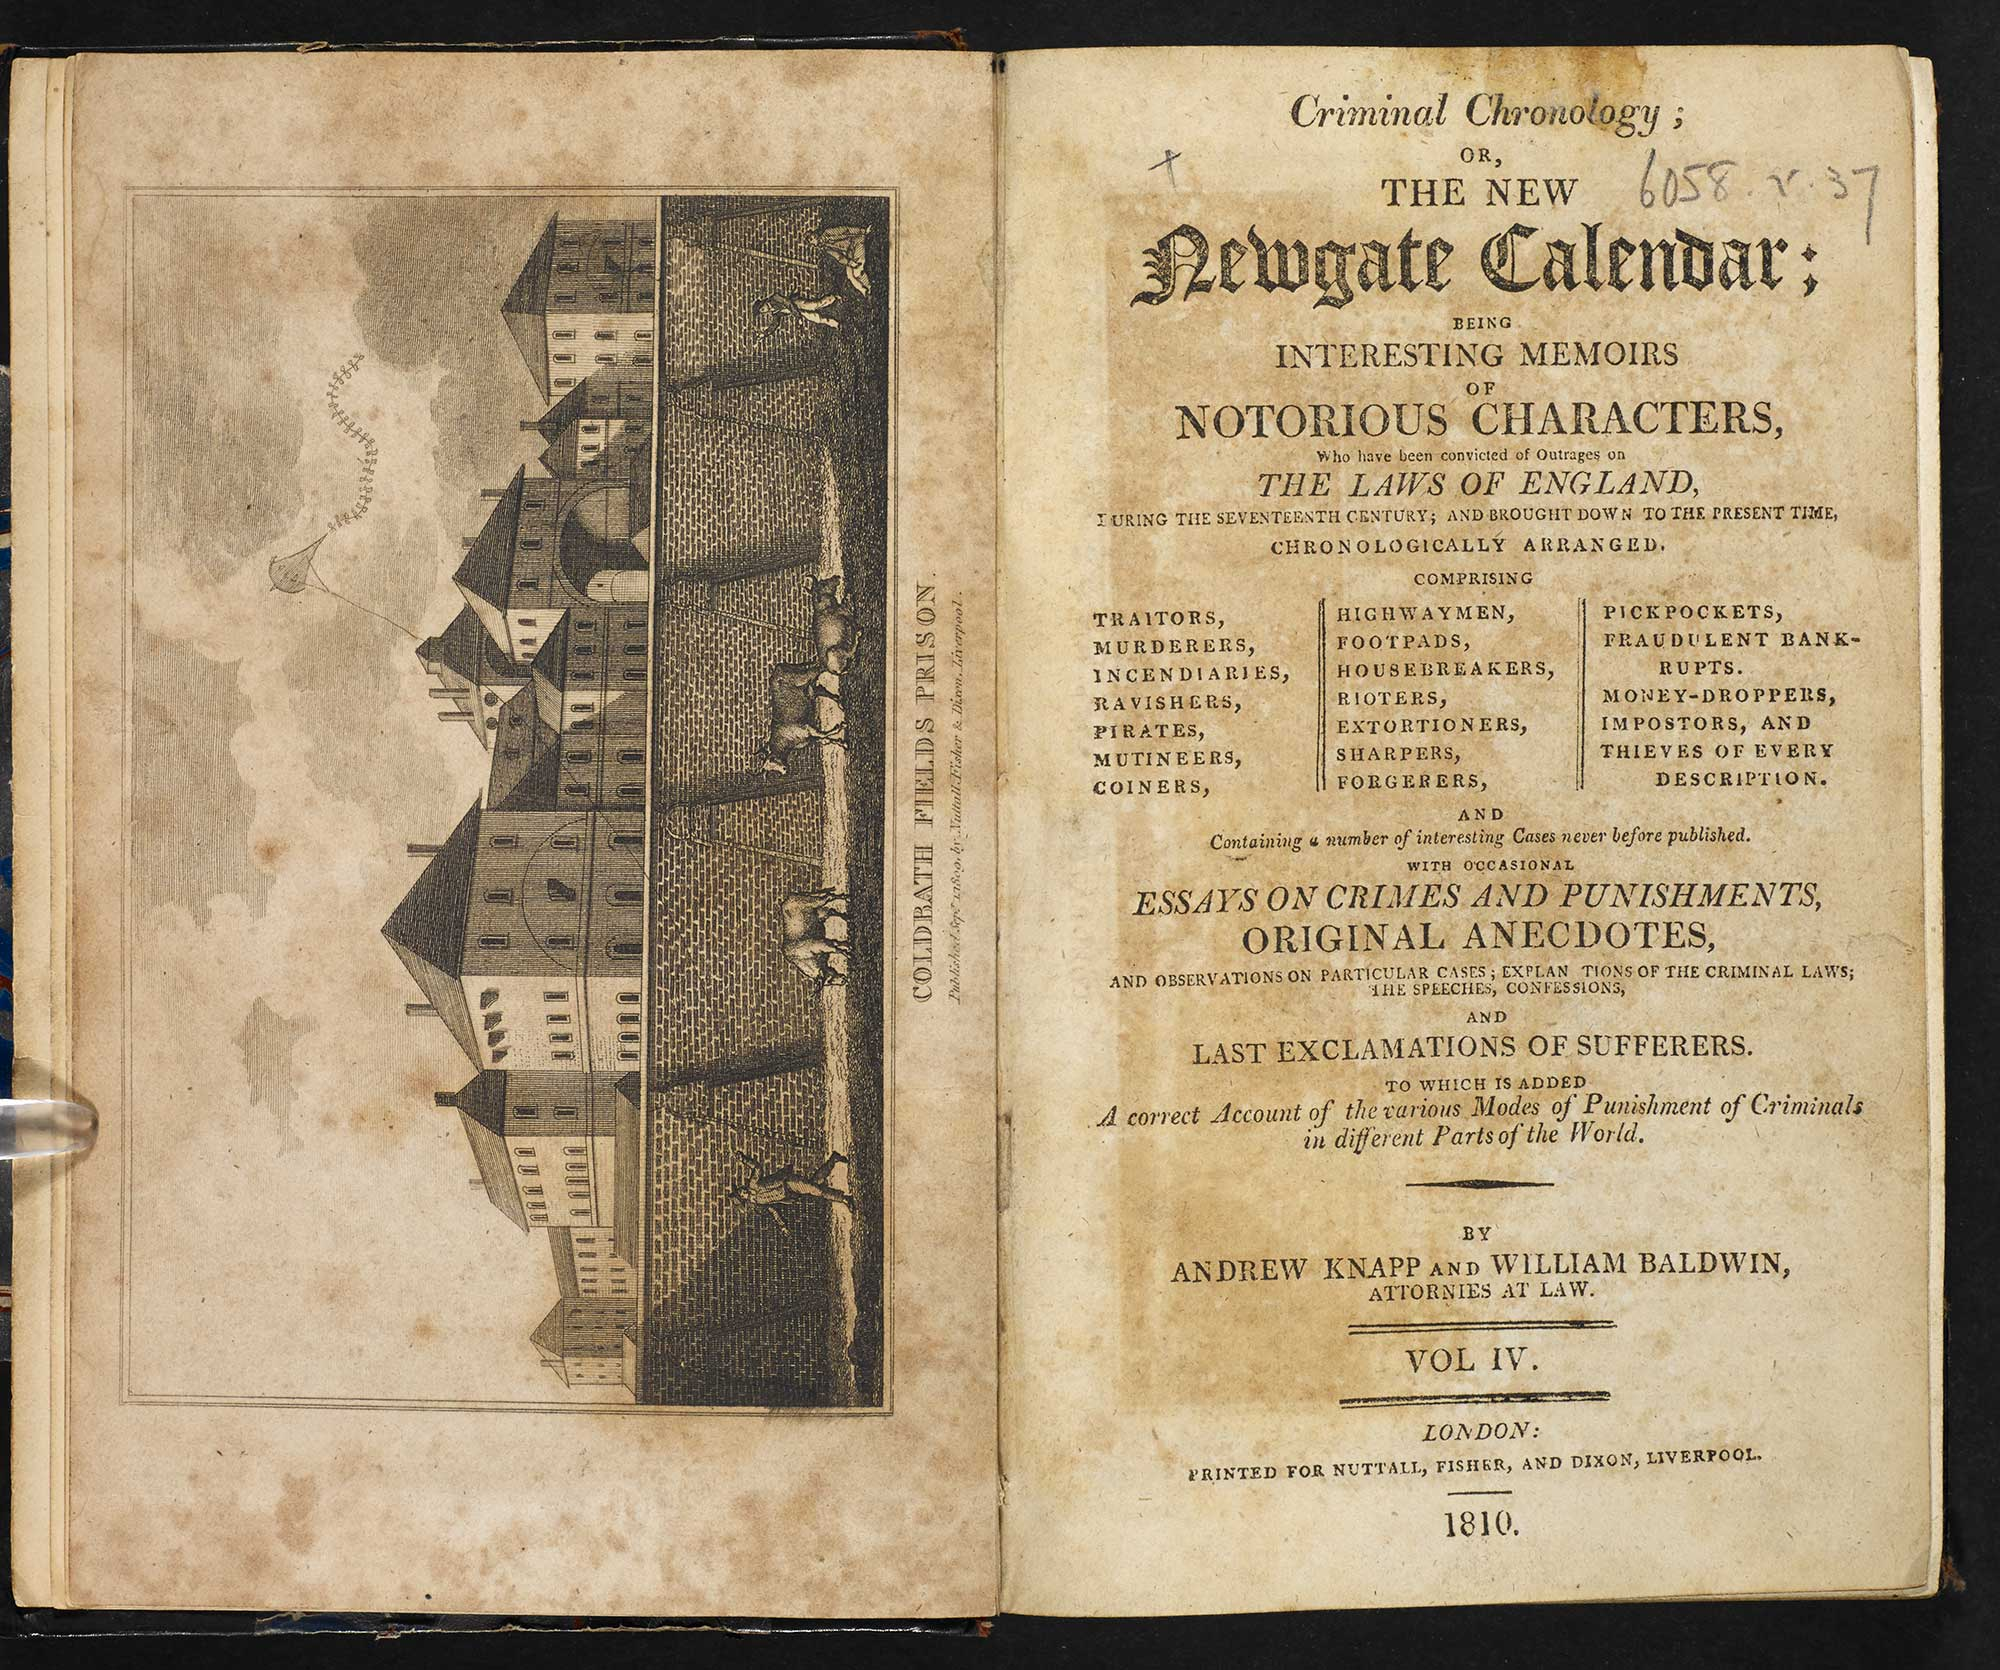 Criminal Chronology [page: vol. 4 frontispiece and title page]